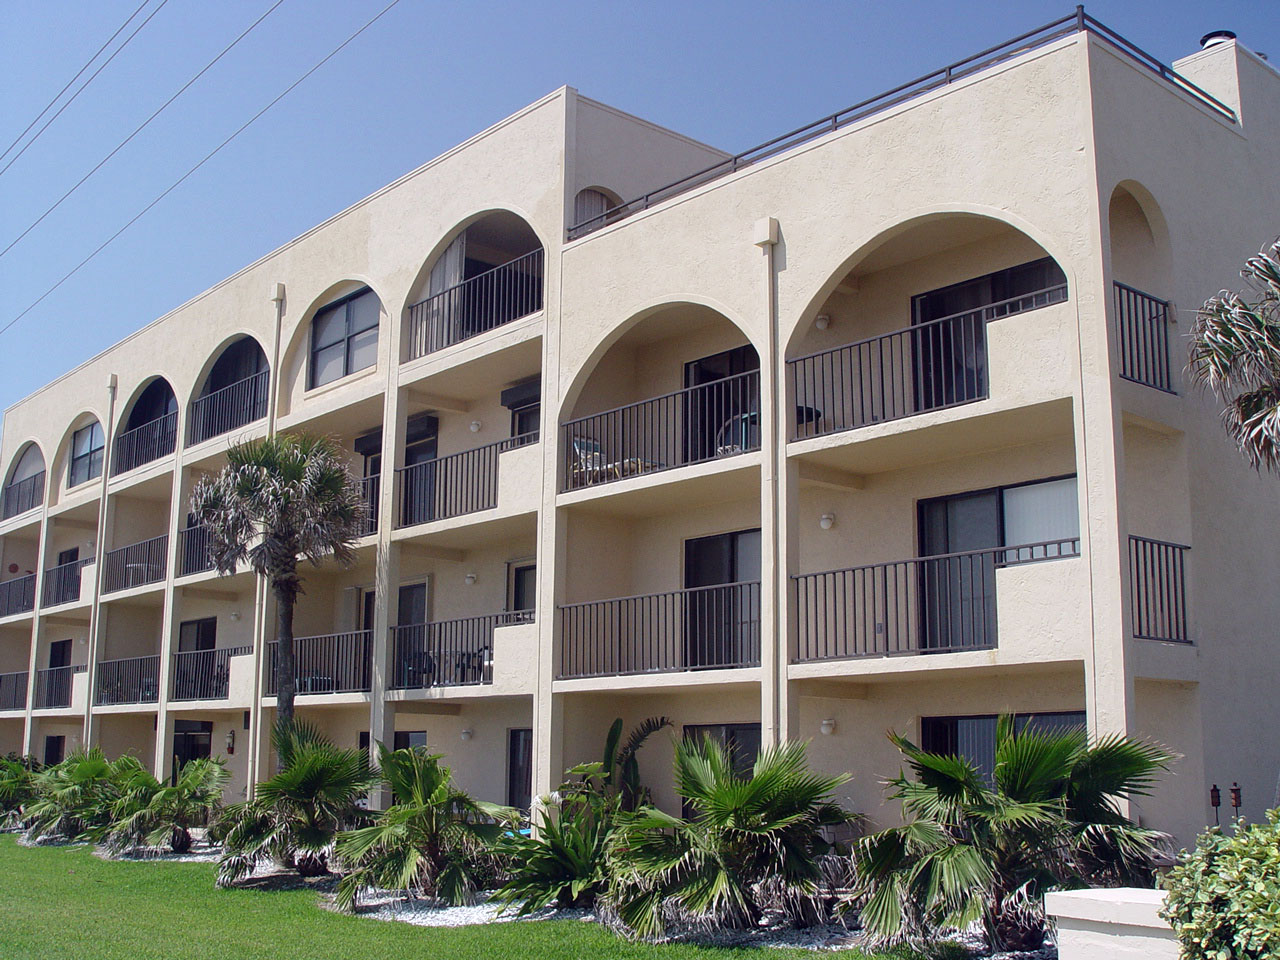 Http Activerain Com Blogsview 1723862 Oceanaire Condo For Sale In Ormond By The Sea Florida 159 900